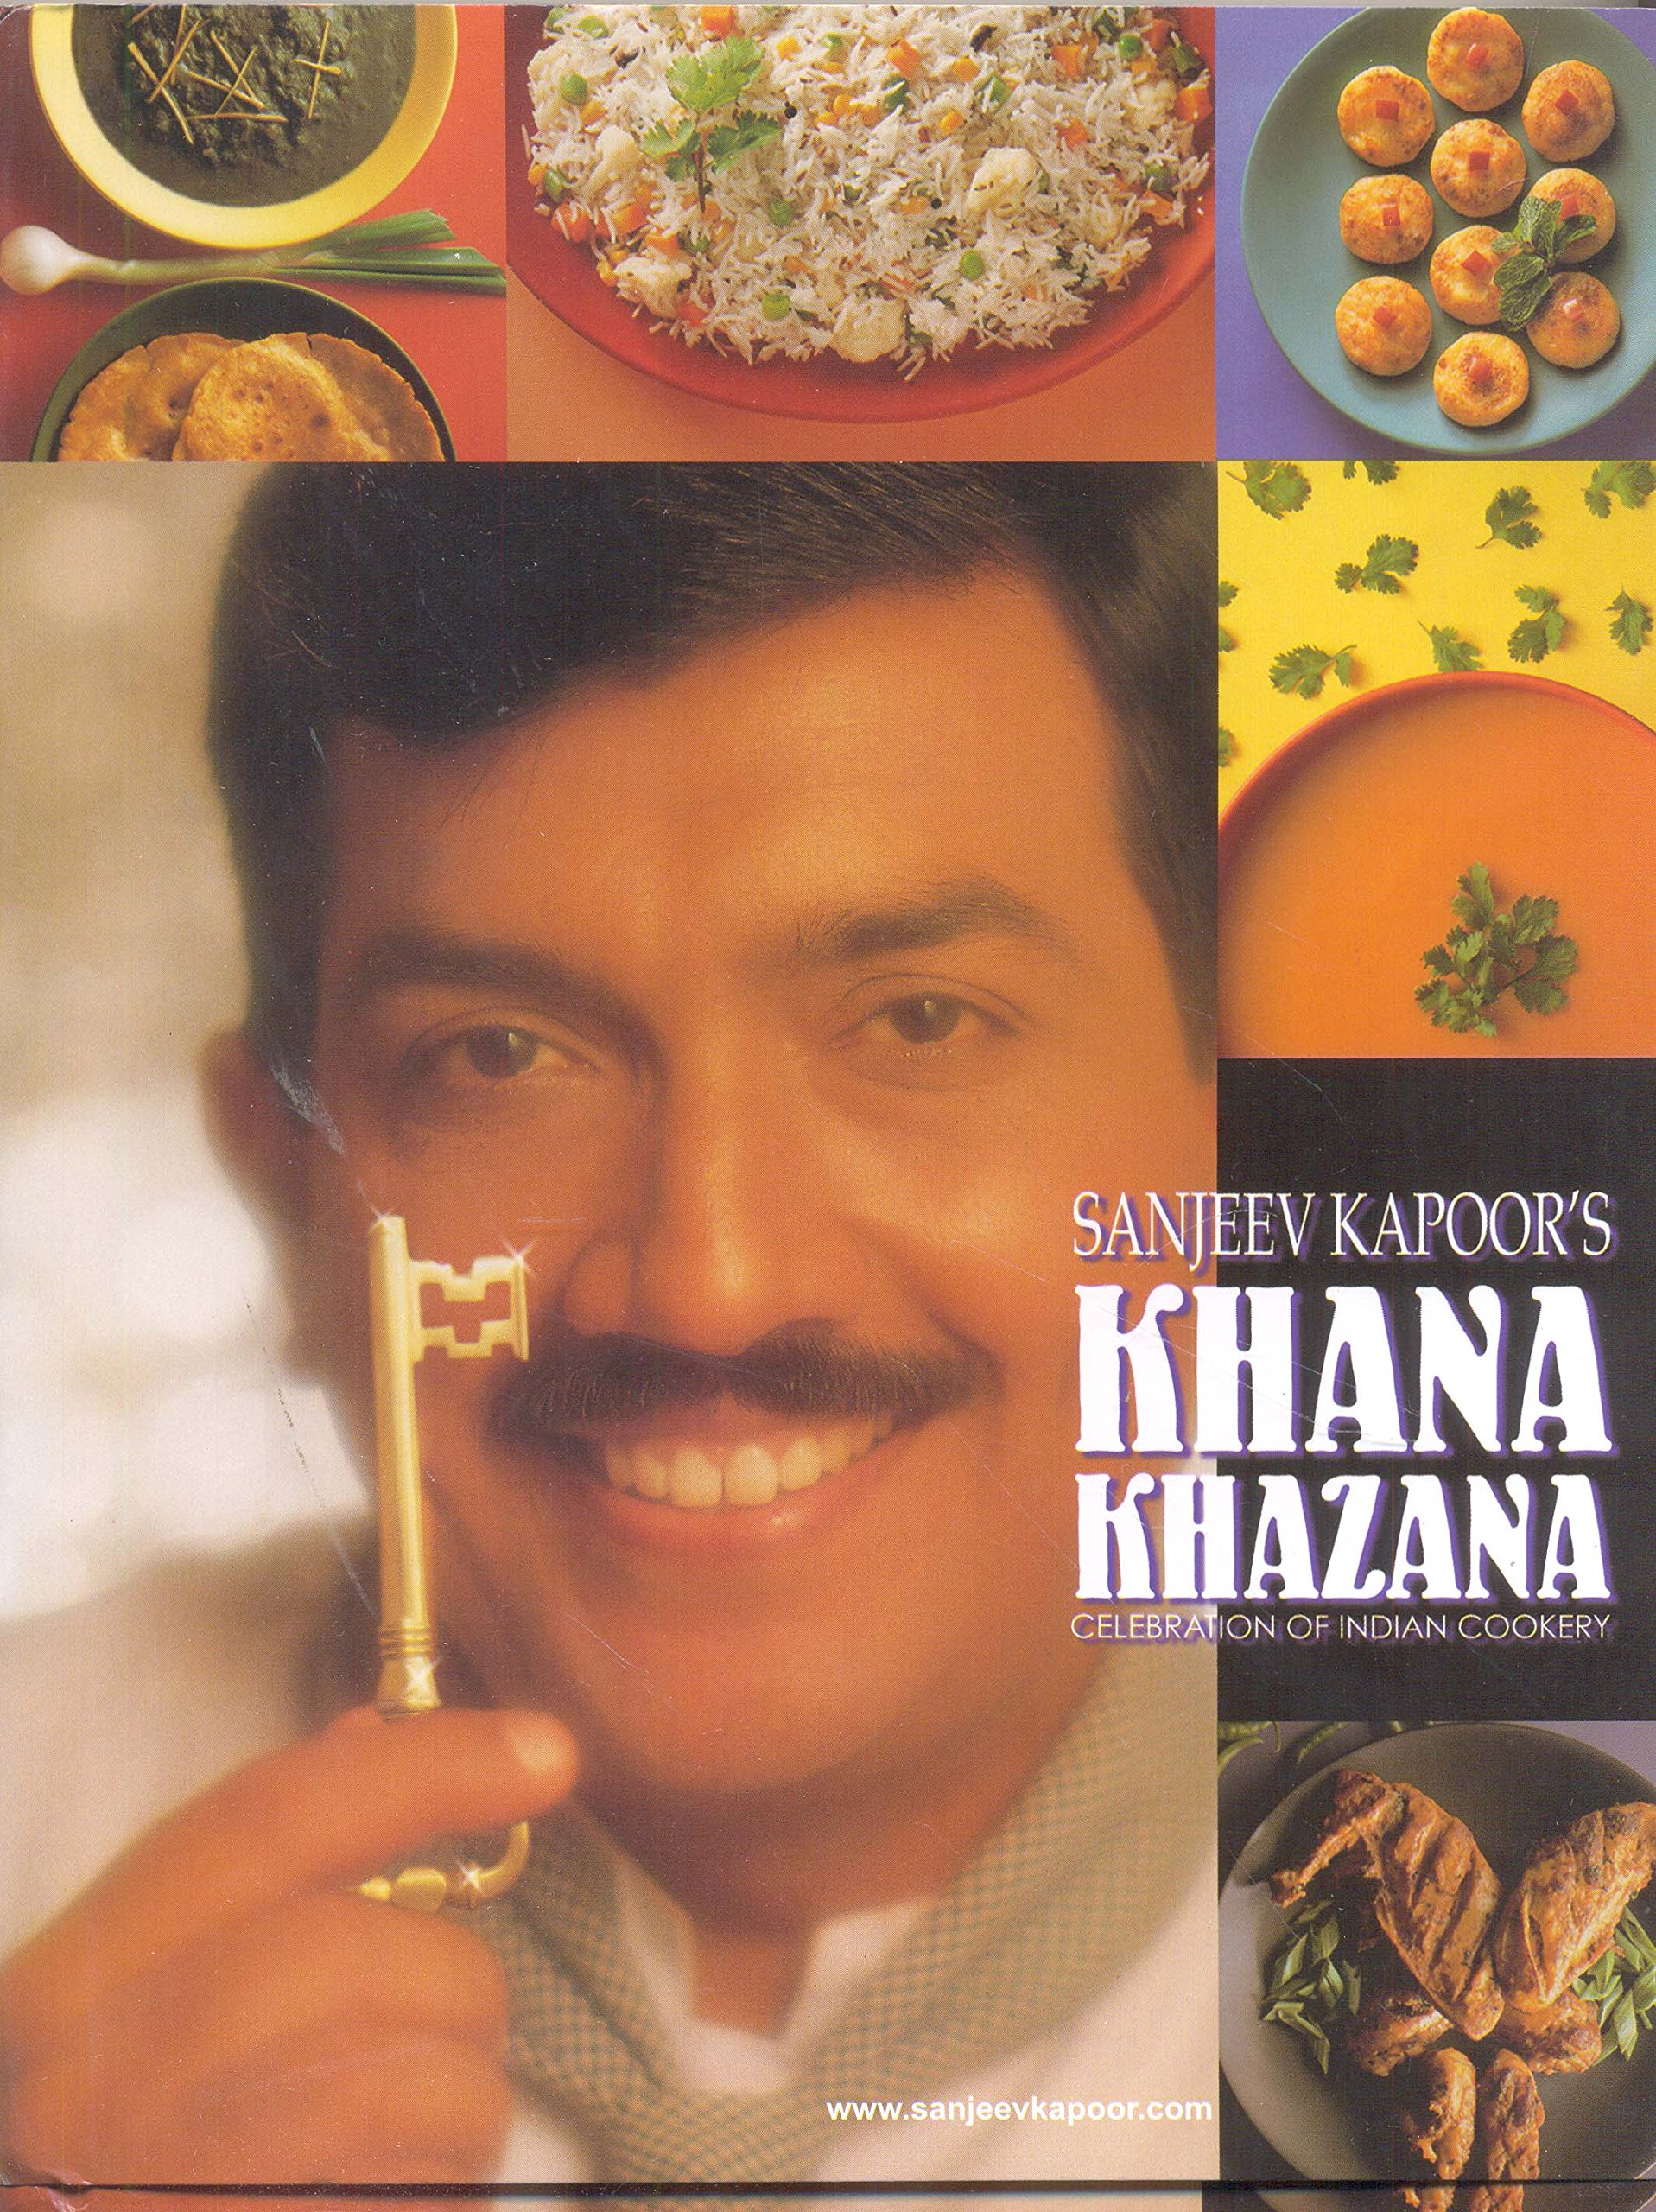 Buy khana khazana celebration of indian cookery book online at low buy khana khazana celebration of indian cookery book online at low prices in india khana khazana celebration of indian cookery reviews ratings forumfinder Images